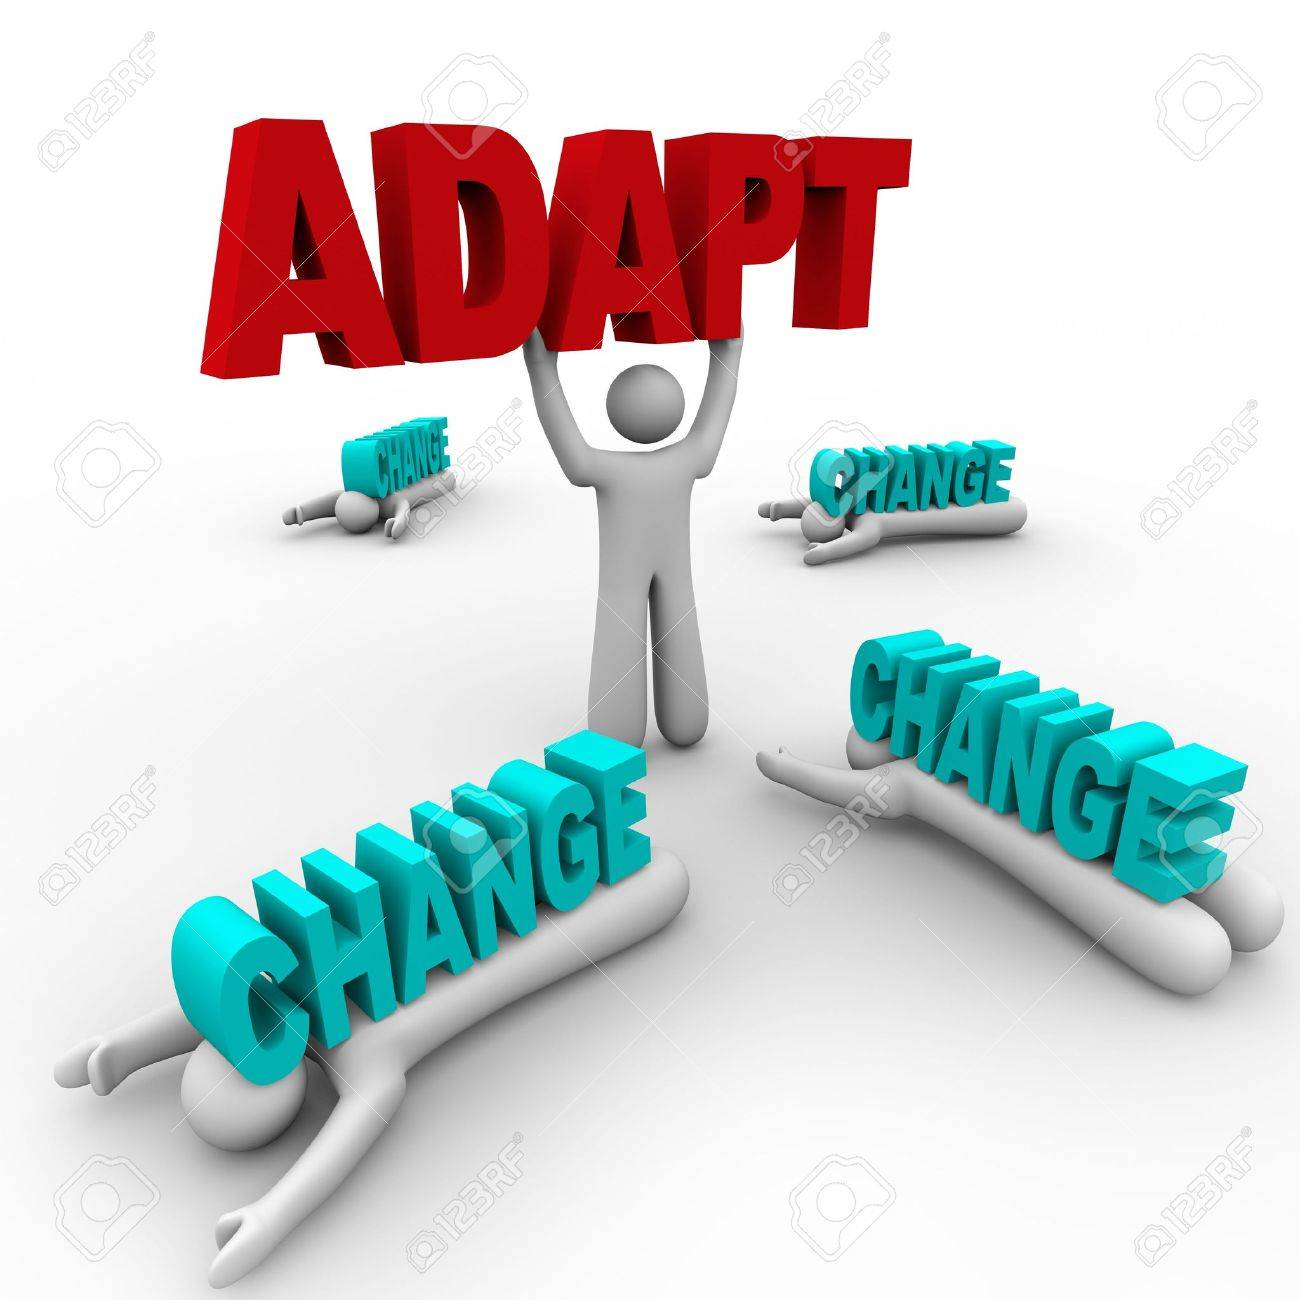 one person stands holding the word adapt, having embraced changeone person stands holding the word adapt, having embraced change, while others did not